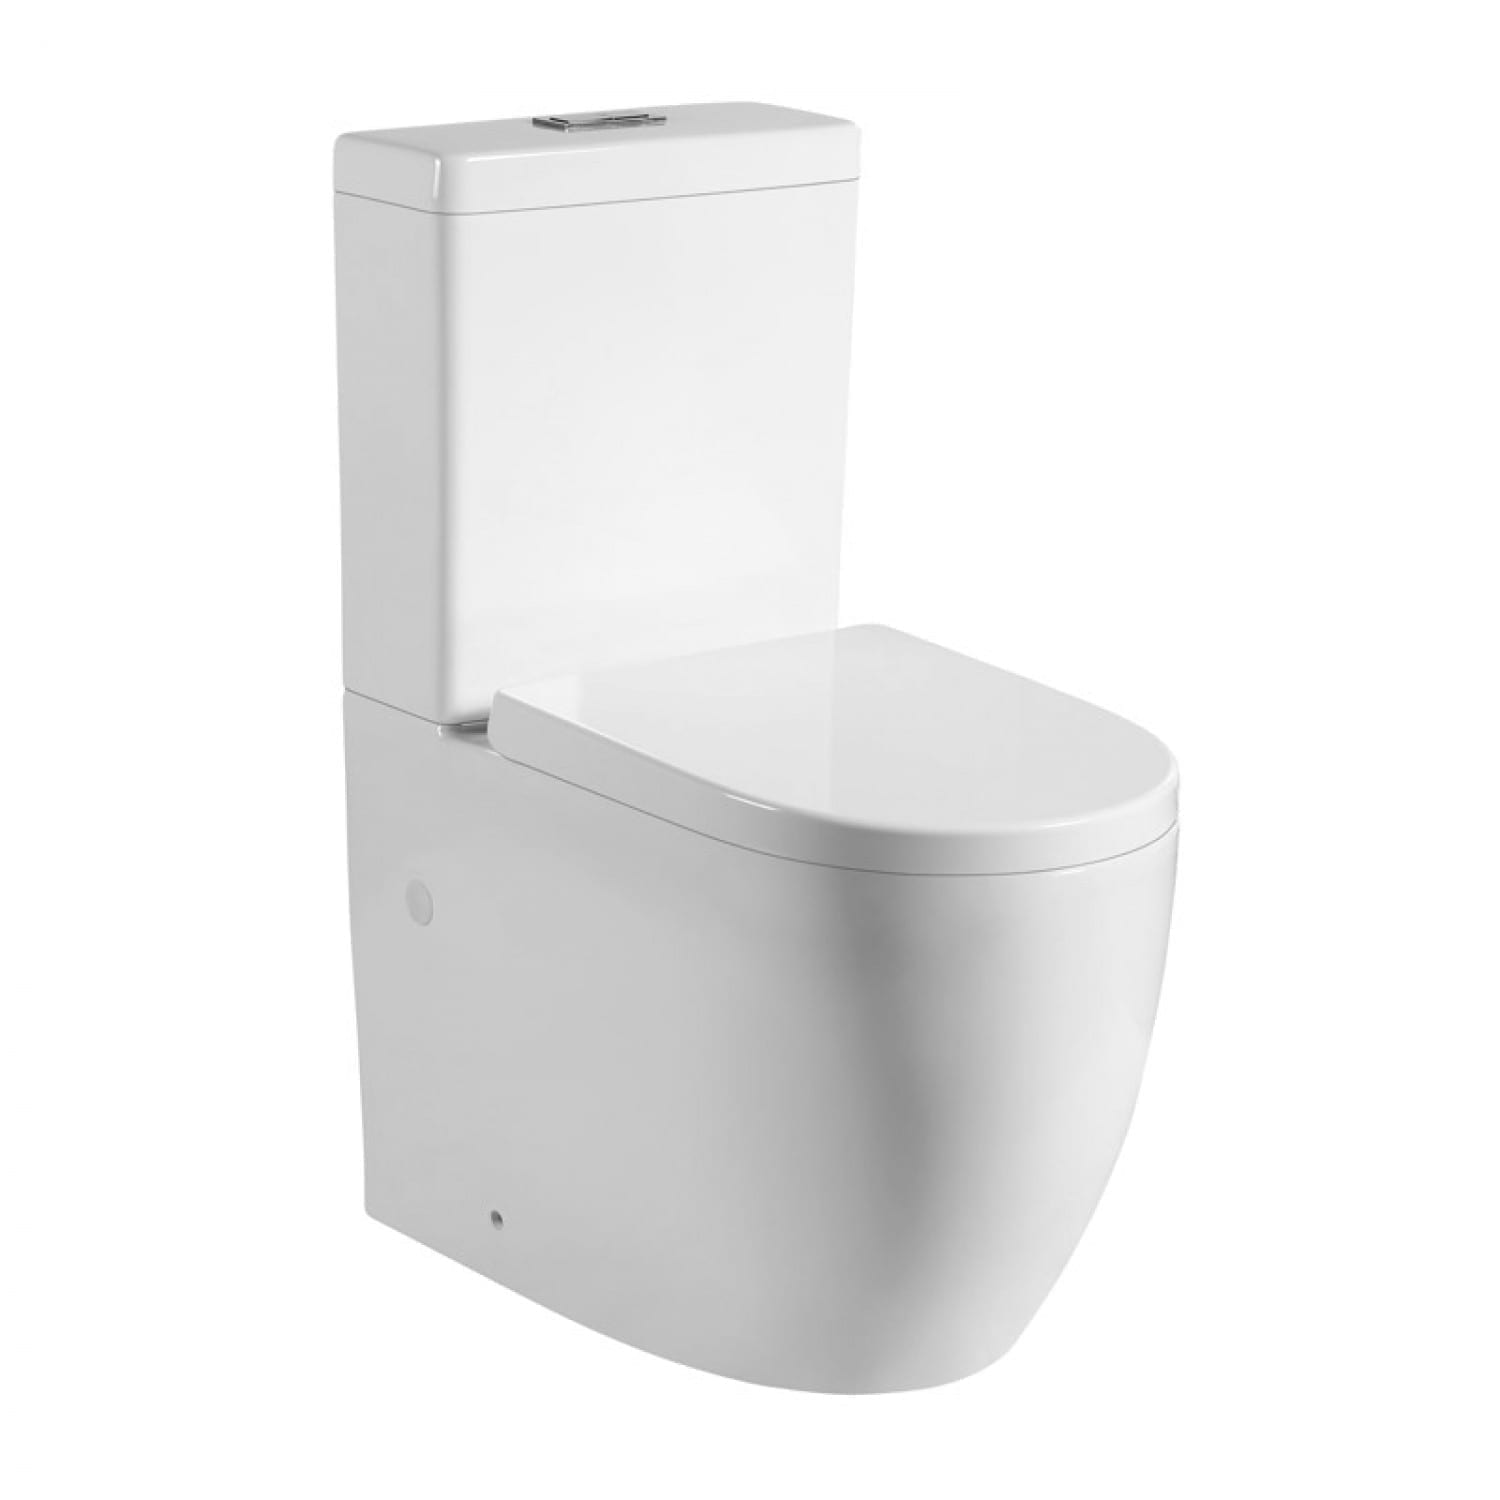 KDK 025 Toilet with Tornado Silent Flush